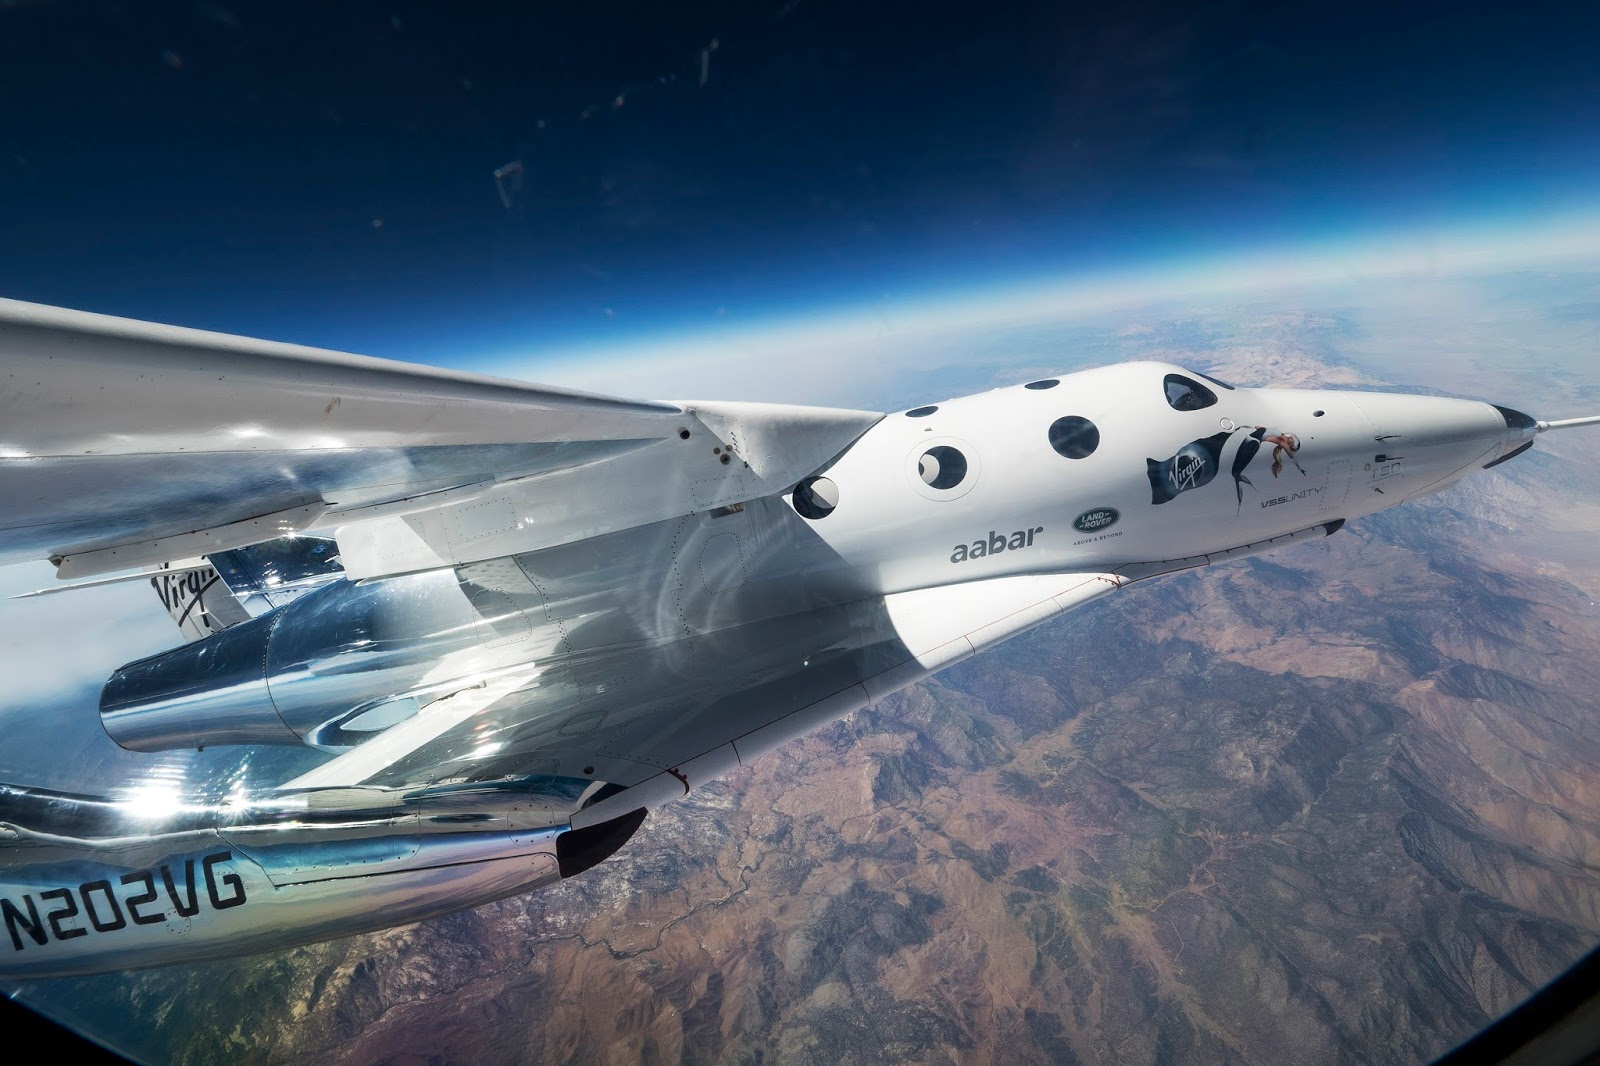 Virgin Galactic Well on it's Way Back Into Space with Successful Test Flights